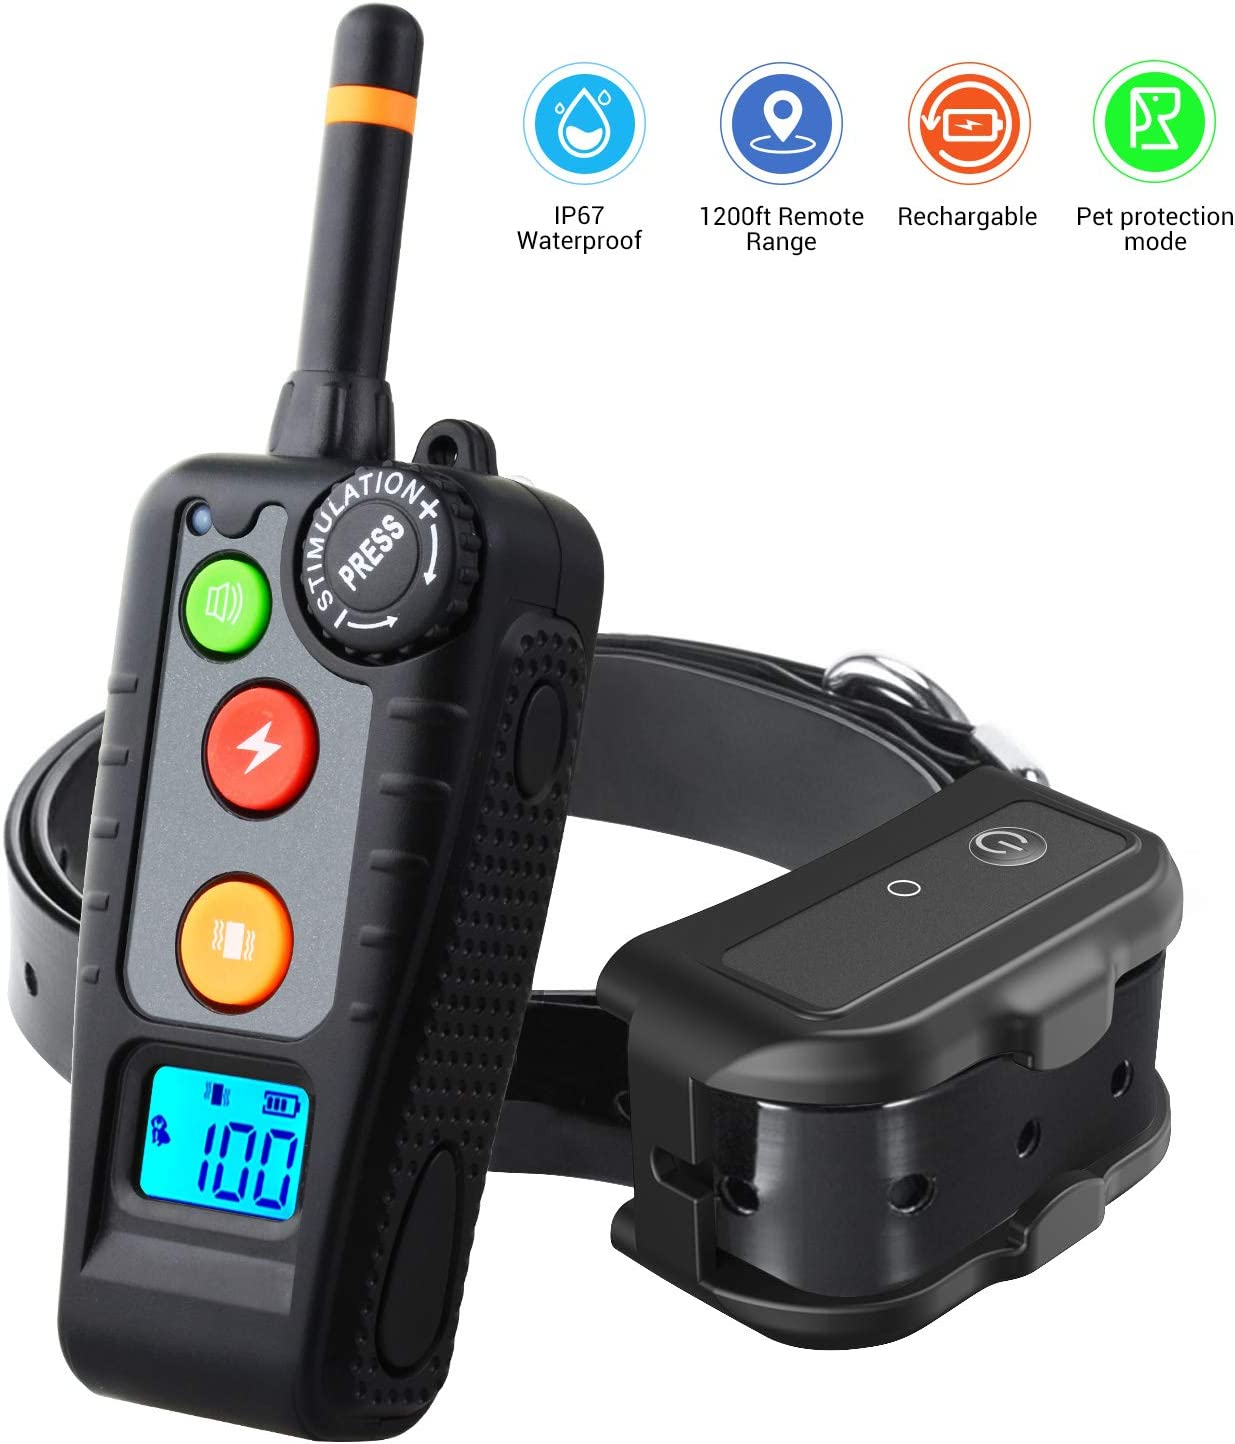 HOLDOG Rechargeable Dog Training Collar with 3 Training Modes, Beep, Vibration and Shock, 100 Waterproof Dog Shock Collar for 1200FT Remote Range